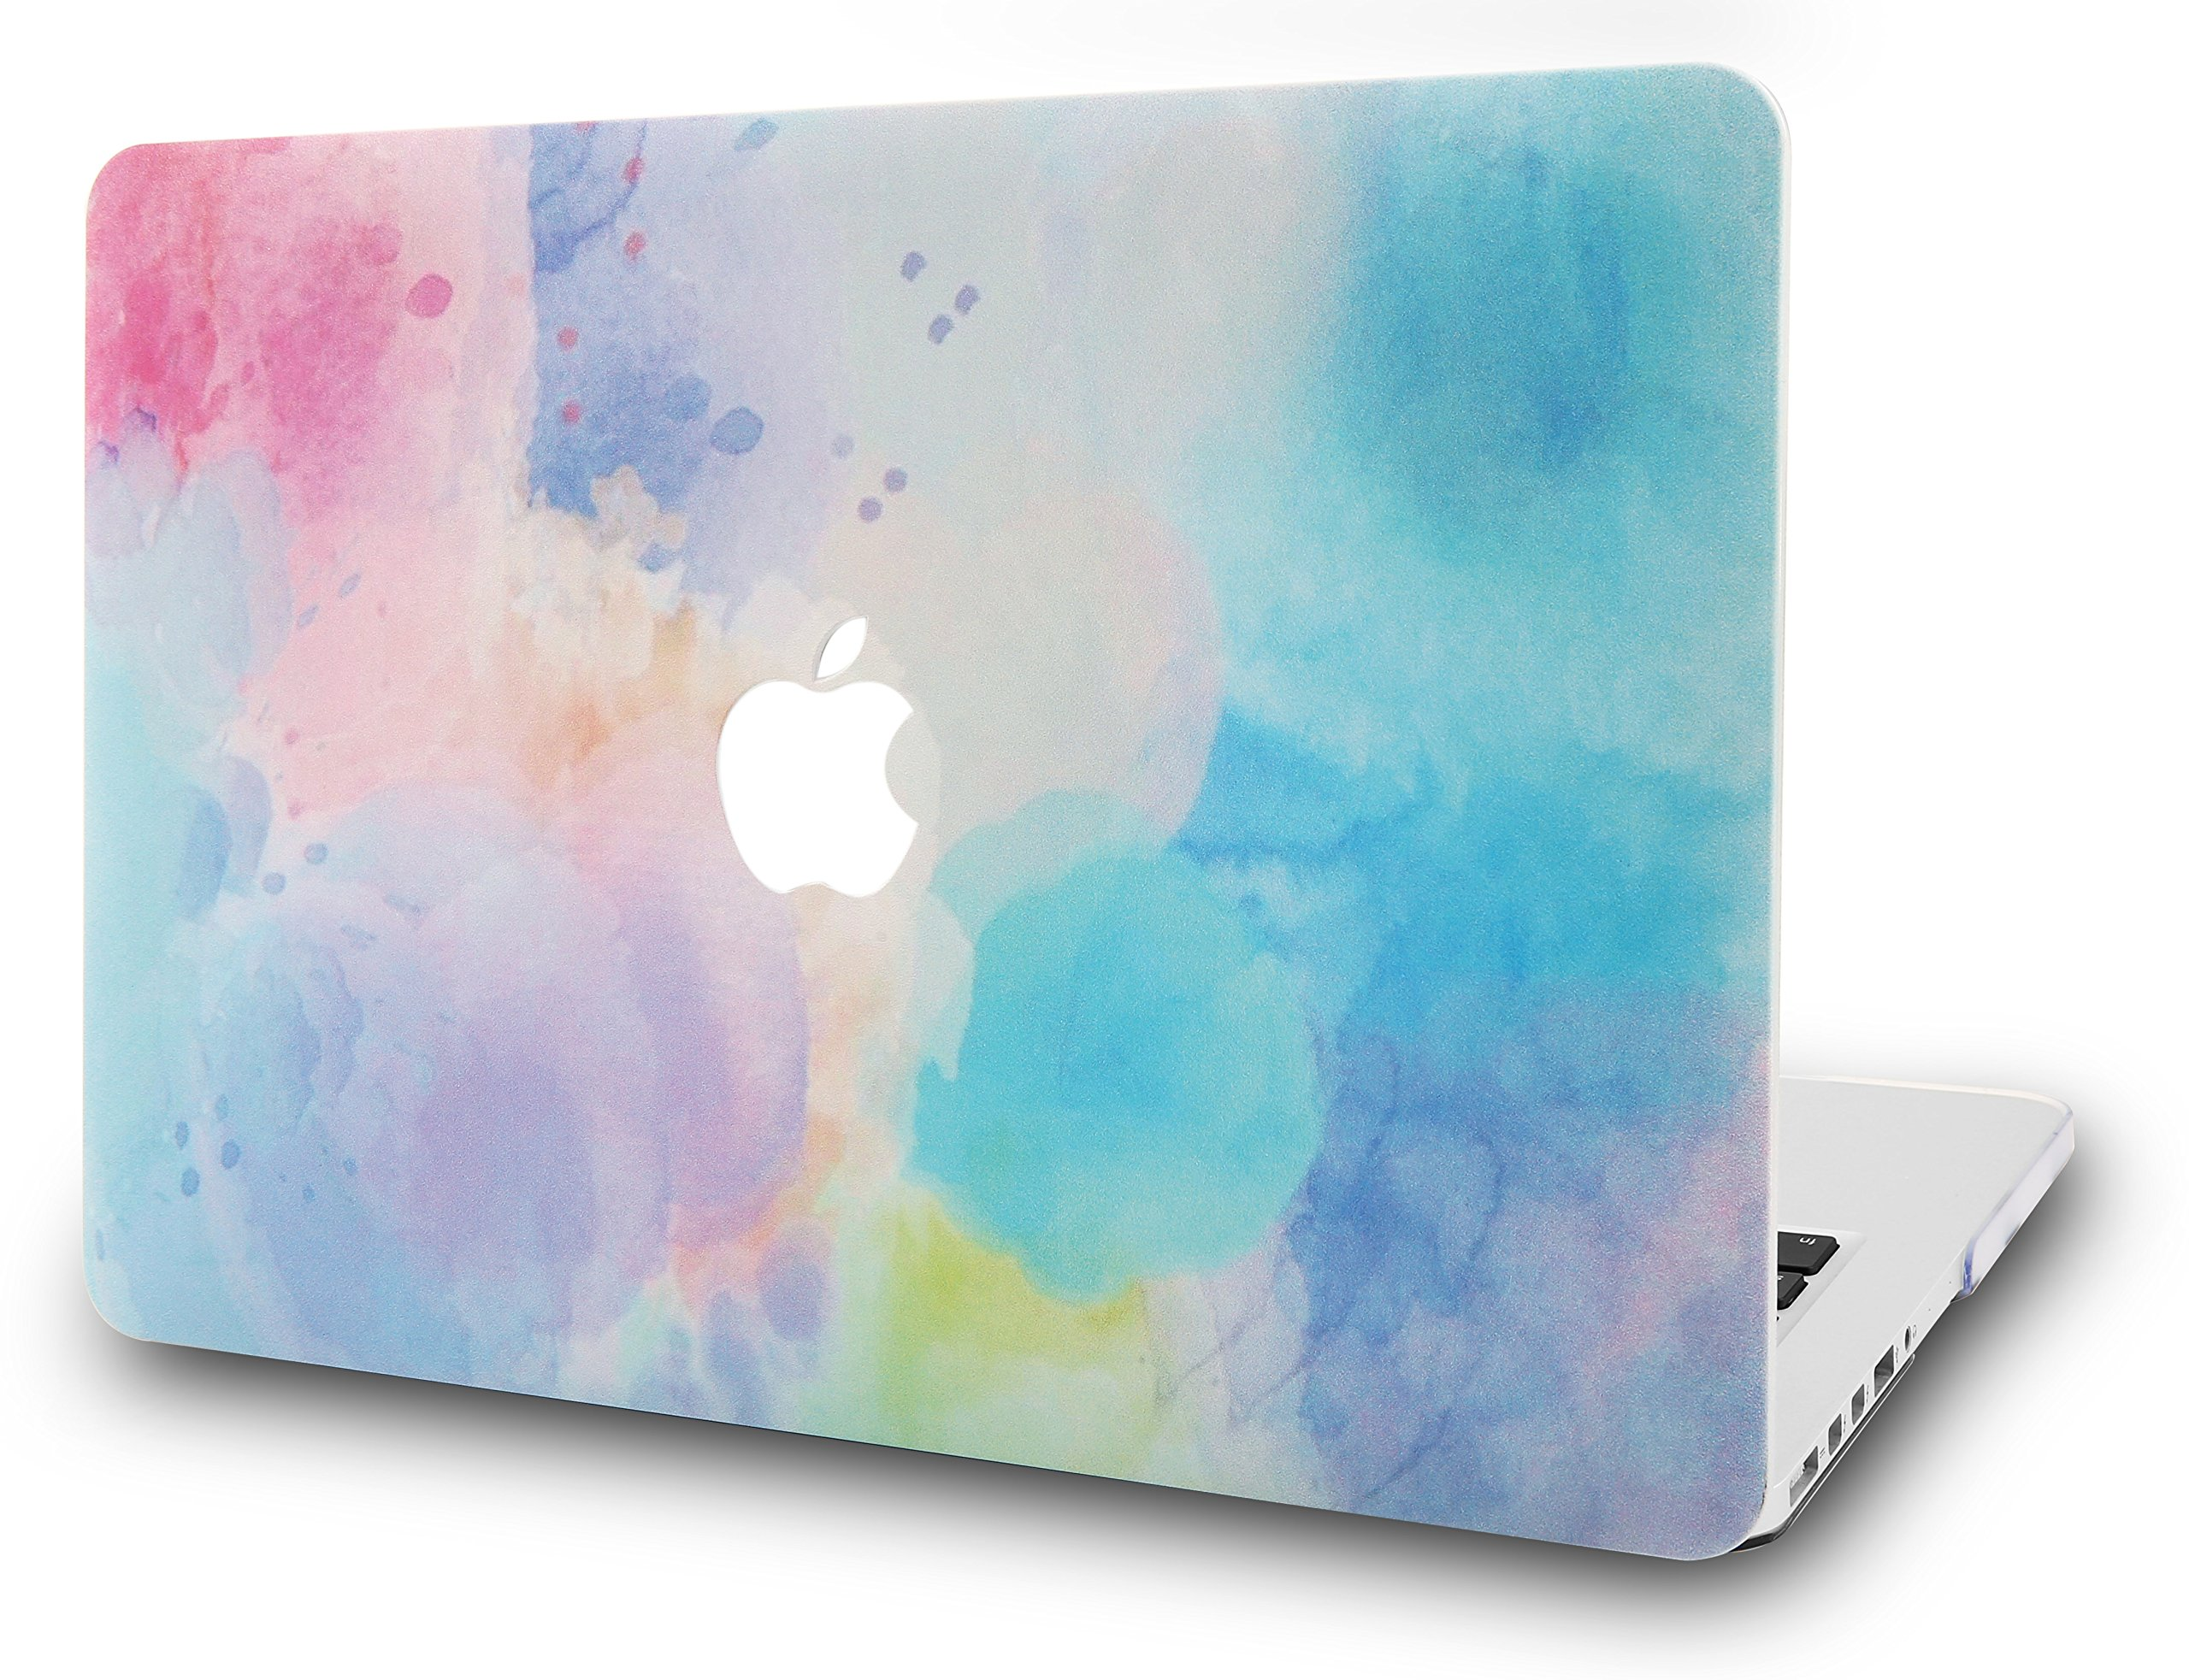 KEC Laptop Case for MacBook Air 13'' w/ Keyboard Cover + Sleeve Plastic Hard Shell Case A1466/A1369  3 in Bundle (Rainbow Mist 2)  by KEC (Image #5)